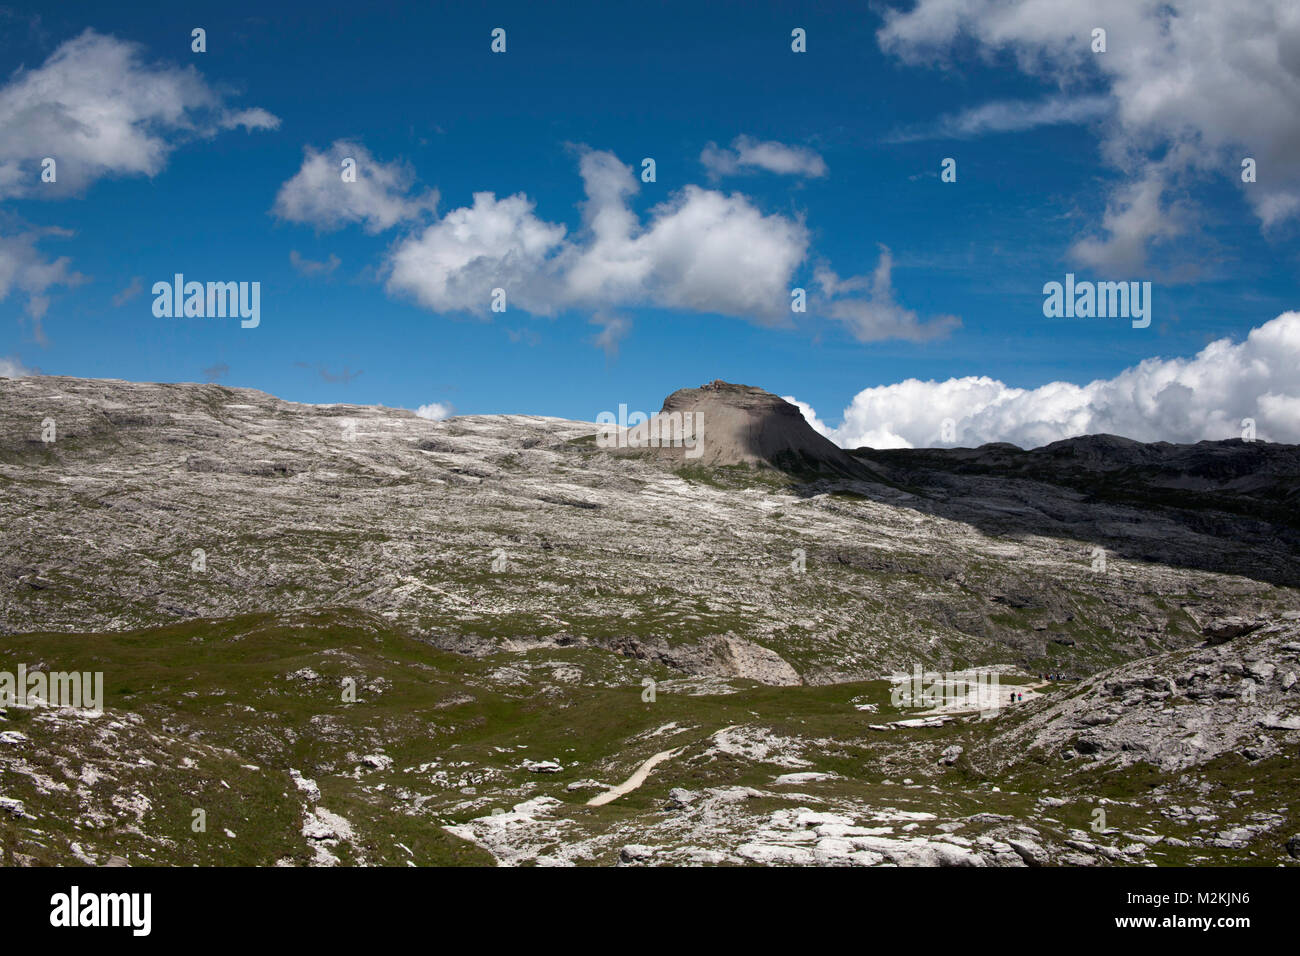 View across Parco Naturale Puez Geisler to the Col dala Sone from near Forc de Ciampei the Dolomites near Selva Stock Photo